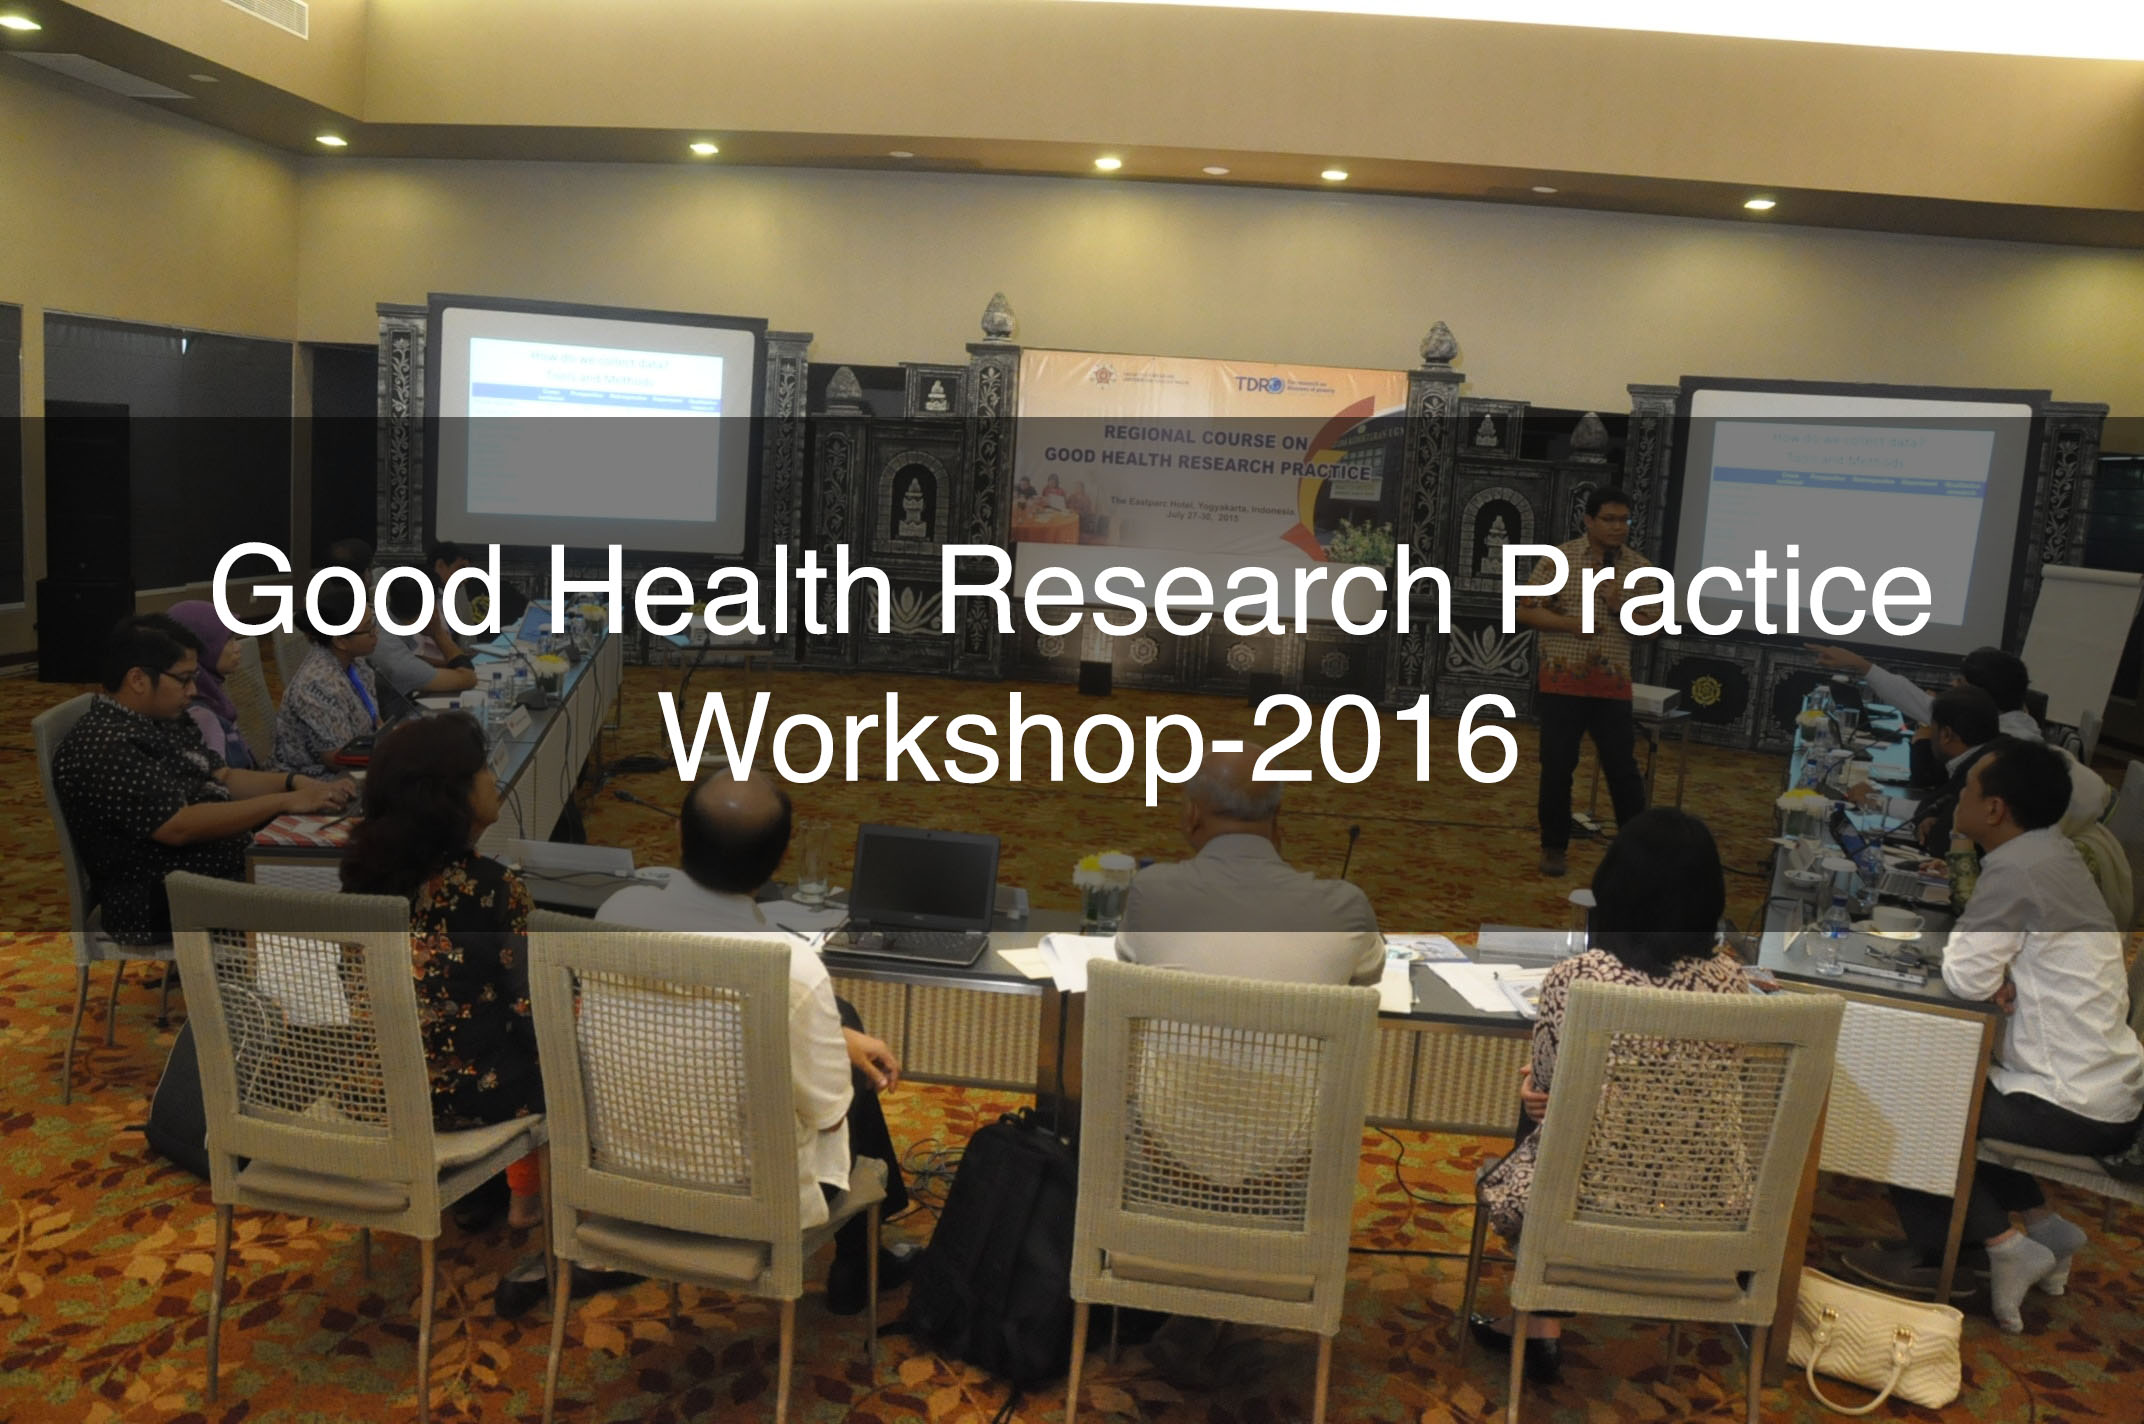 Good Health Research Practise, Health System, Public health, Public health Management, Public health training india, training, Public health india